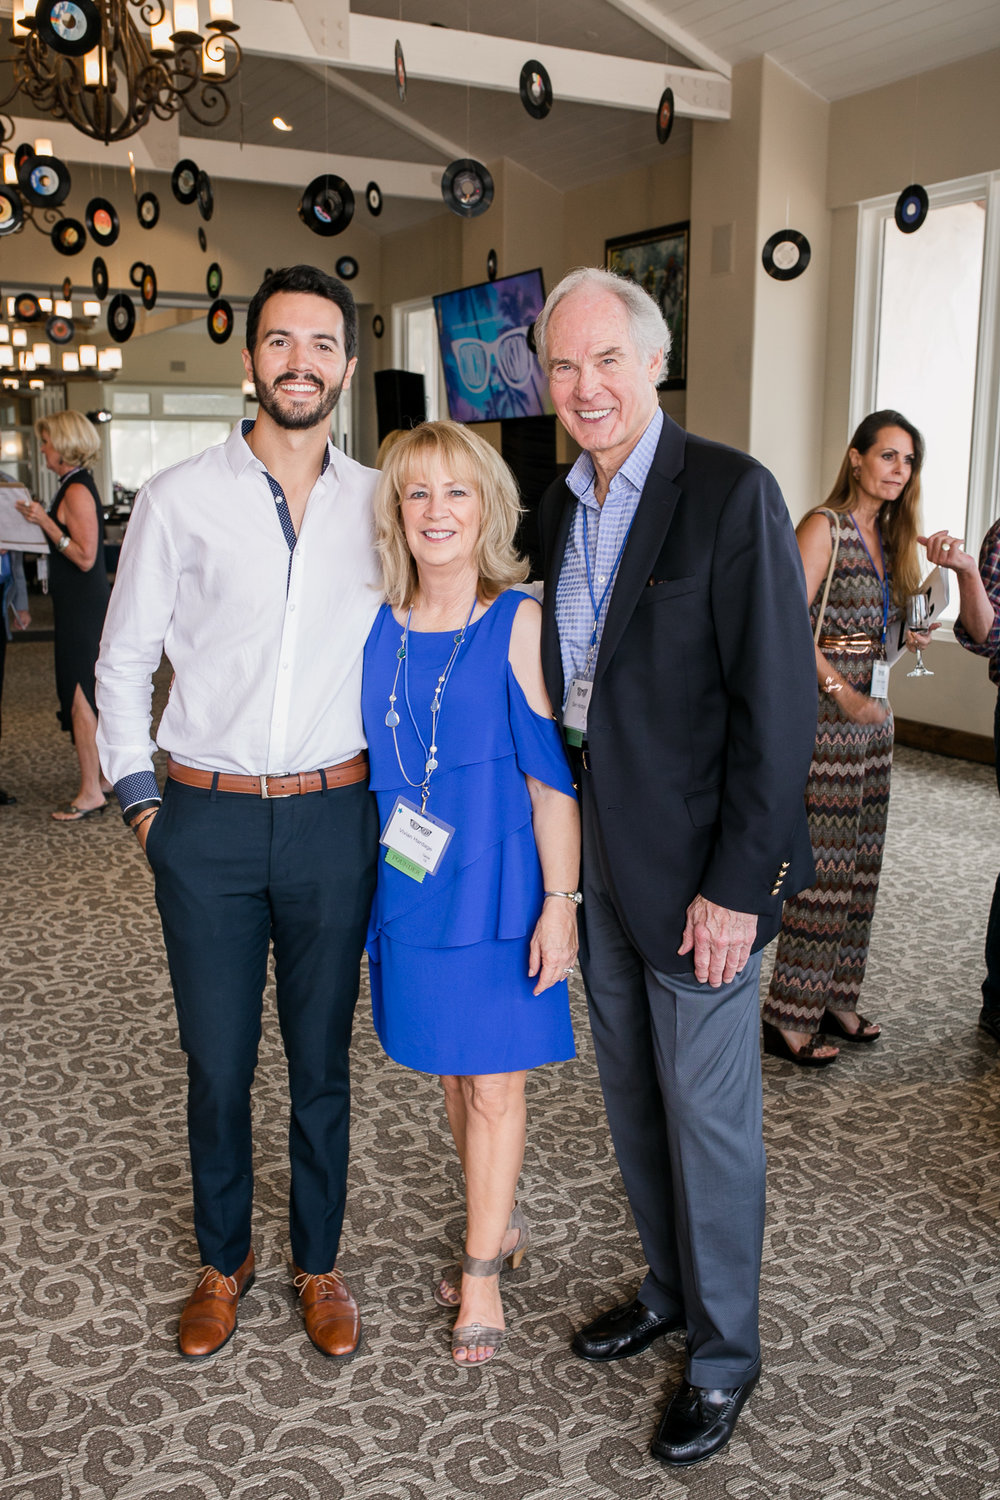 Jeremy Poincenot, VOC Vision Hero, with Vivian and Sam Hardage, Co-Founders, The Vision of Children Foundation. Photo: Cori Nichols, Fairbanks Living